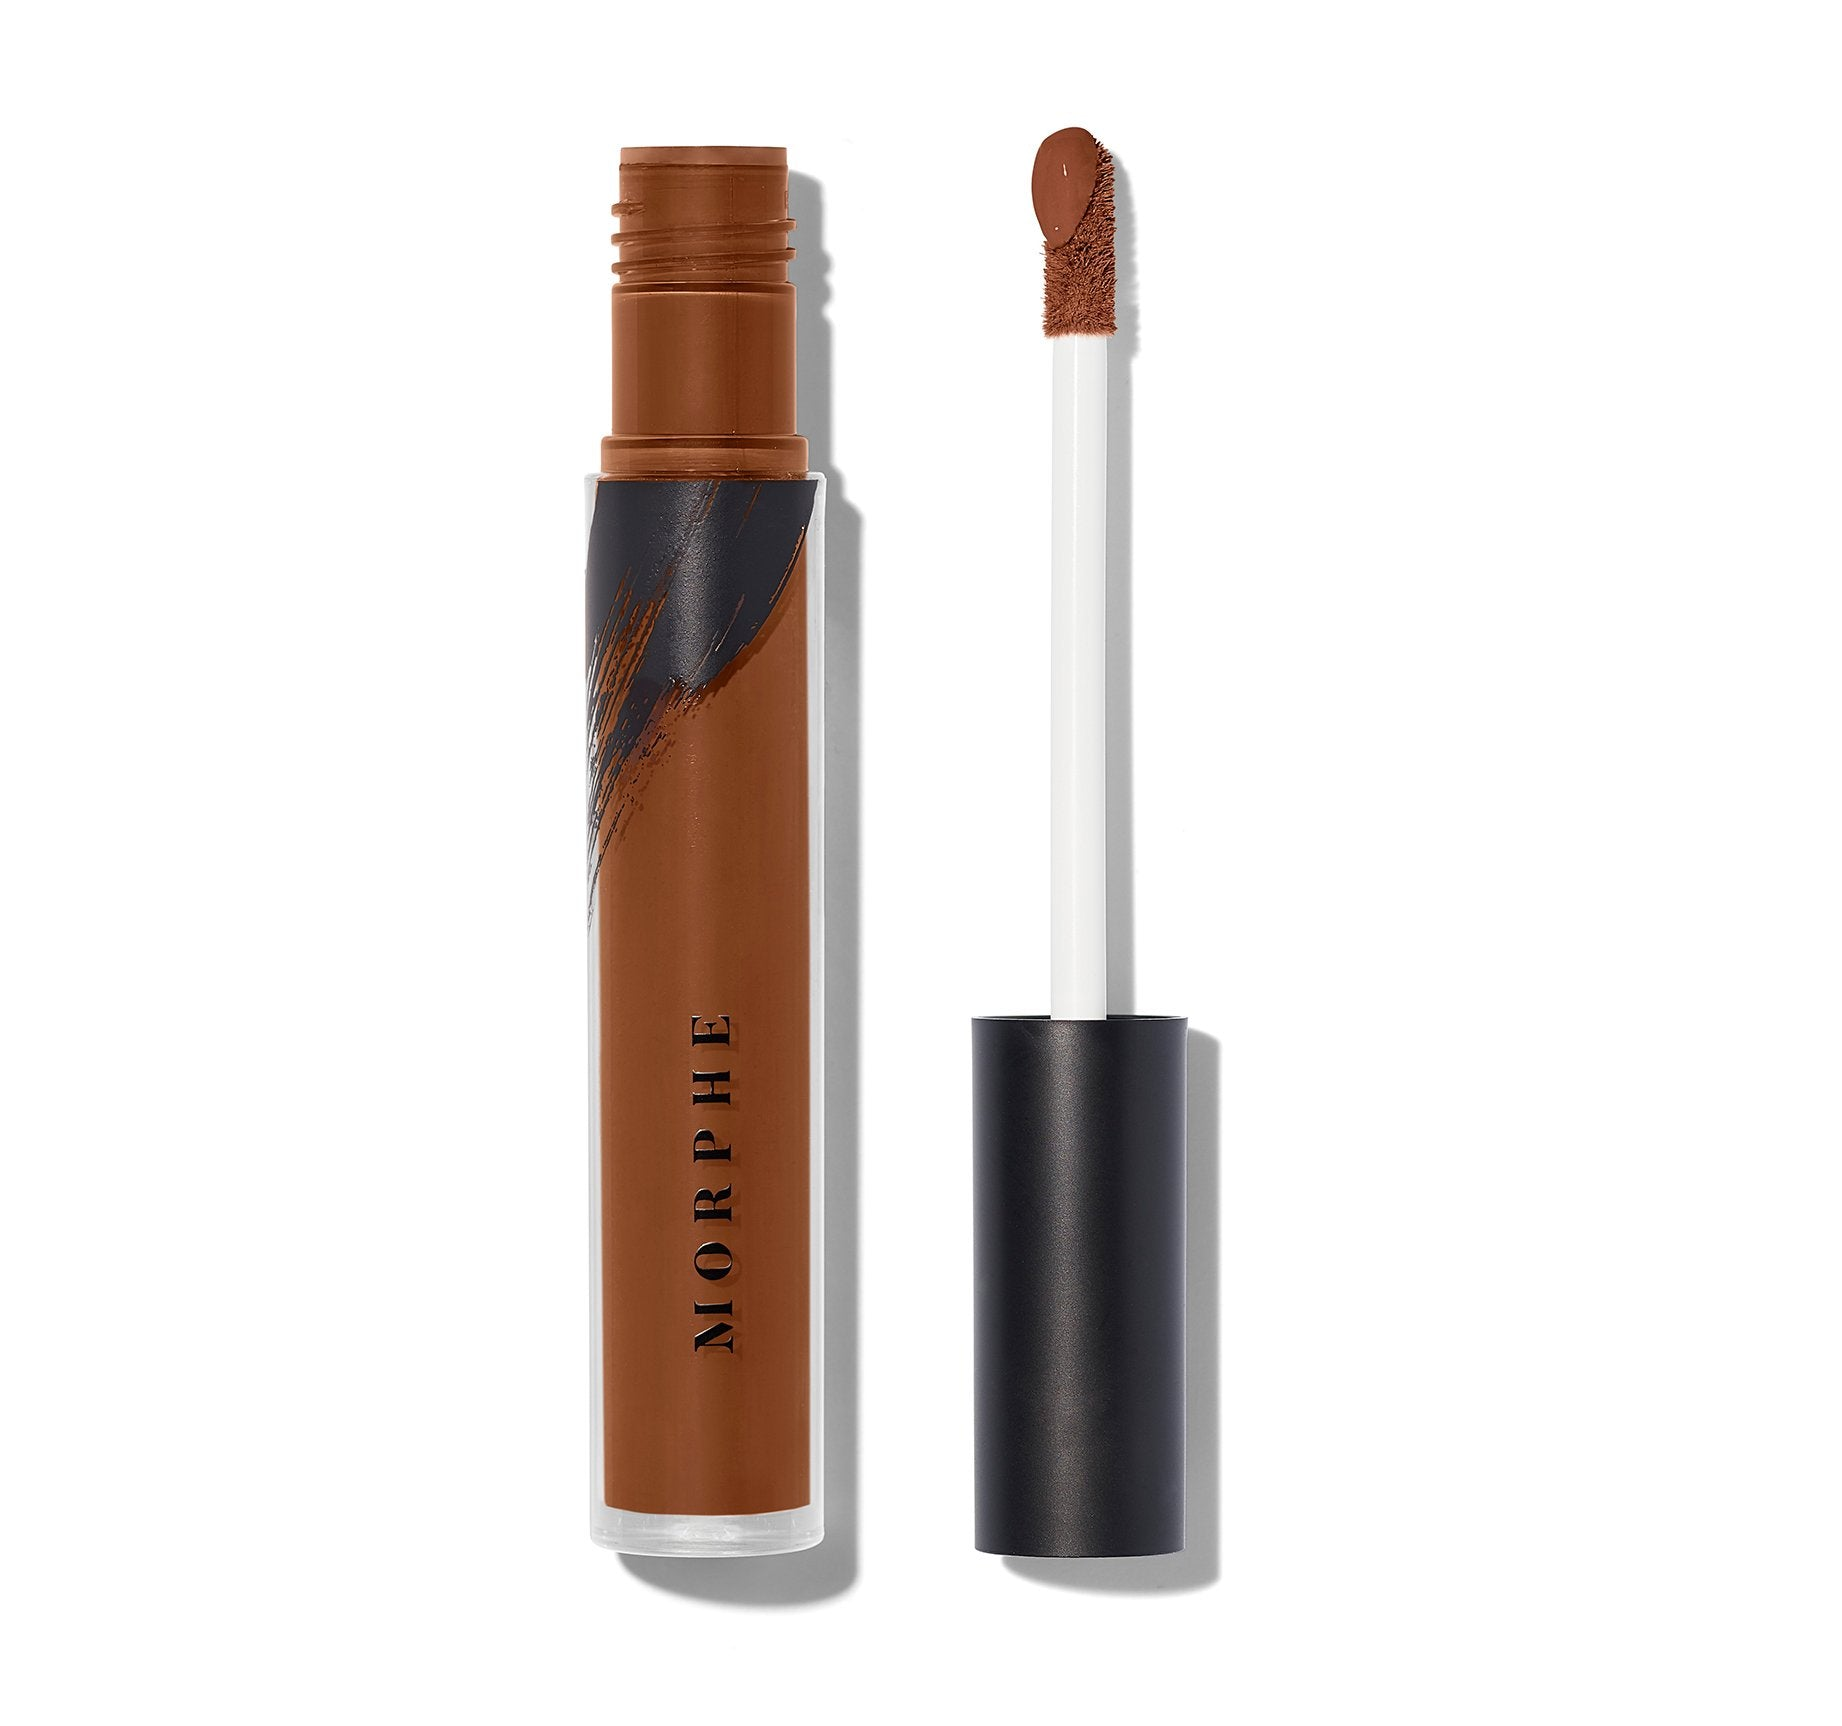 FLUIDITY FULL-COVERAGE CONCEALER - C5.25, view larger image